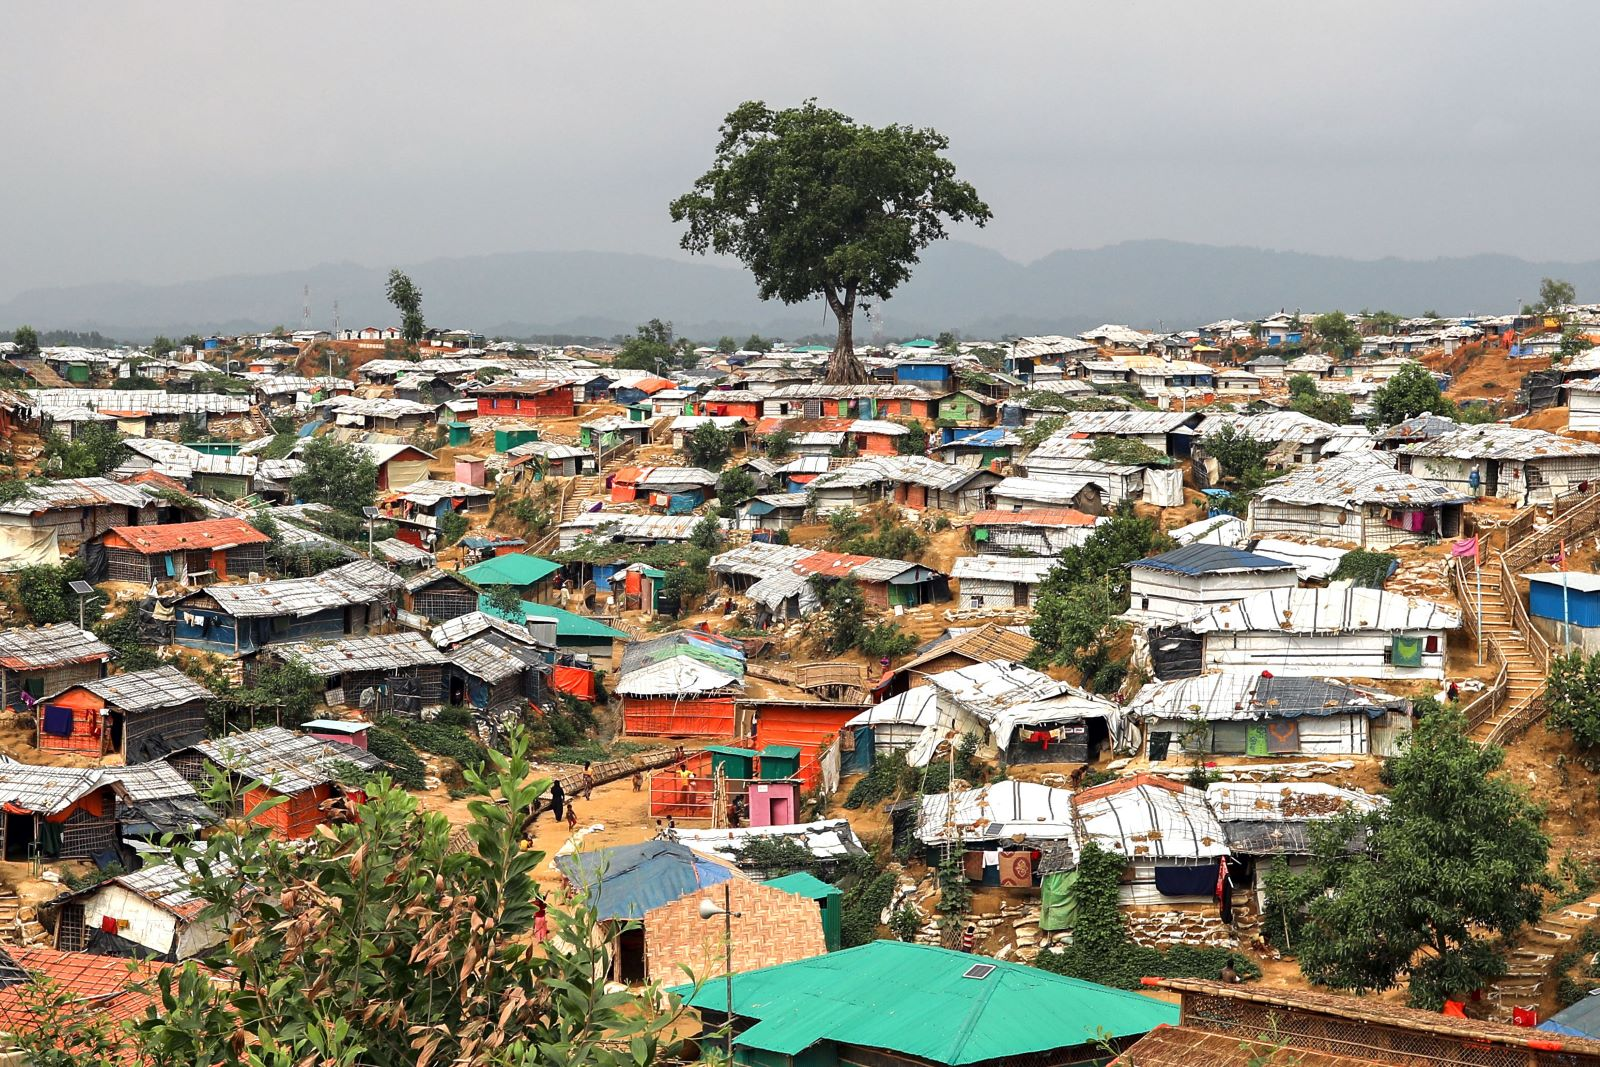 The Balukhali camp in Cox's Bazar Bangladesh on March 07, 2019. (Photo: Kazi Salahuddin Razu/Getty)